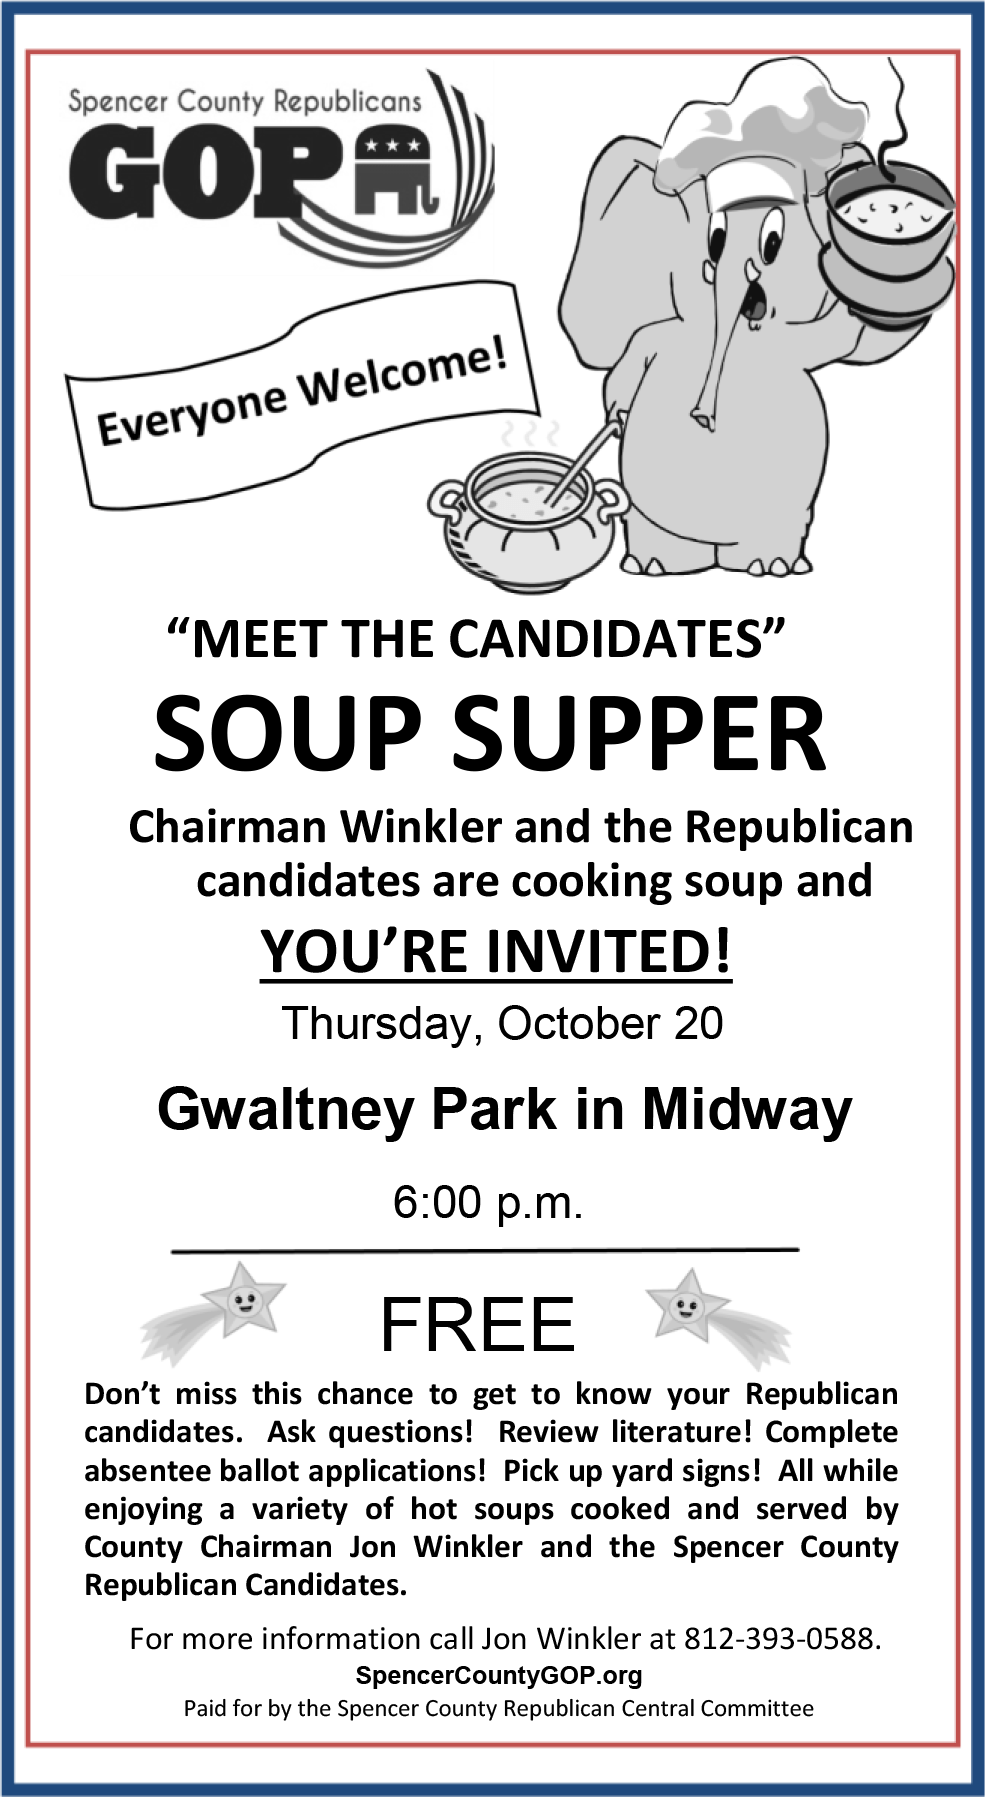 Indiana spencer county rockport - Come Meet The Candidates